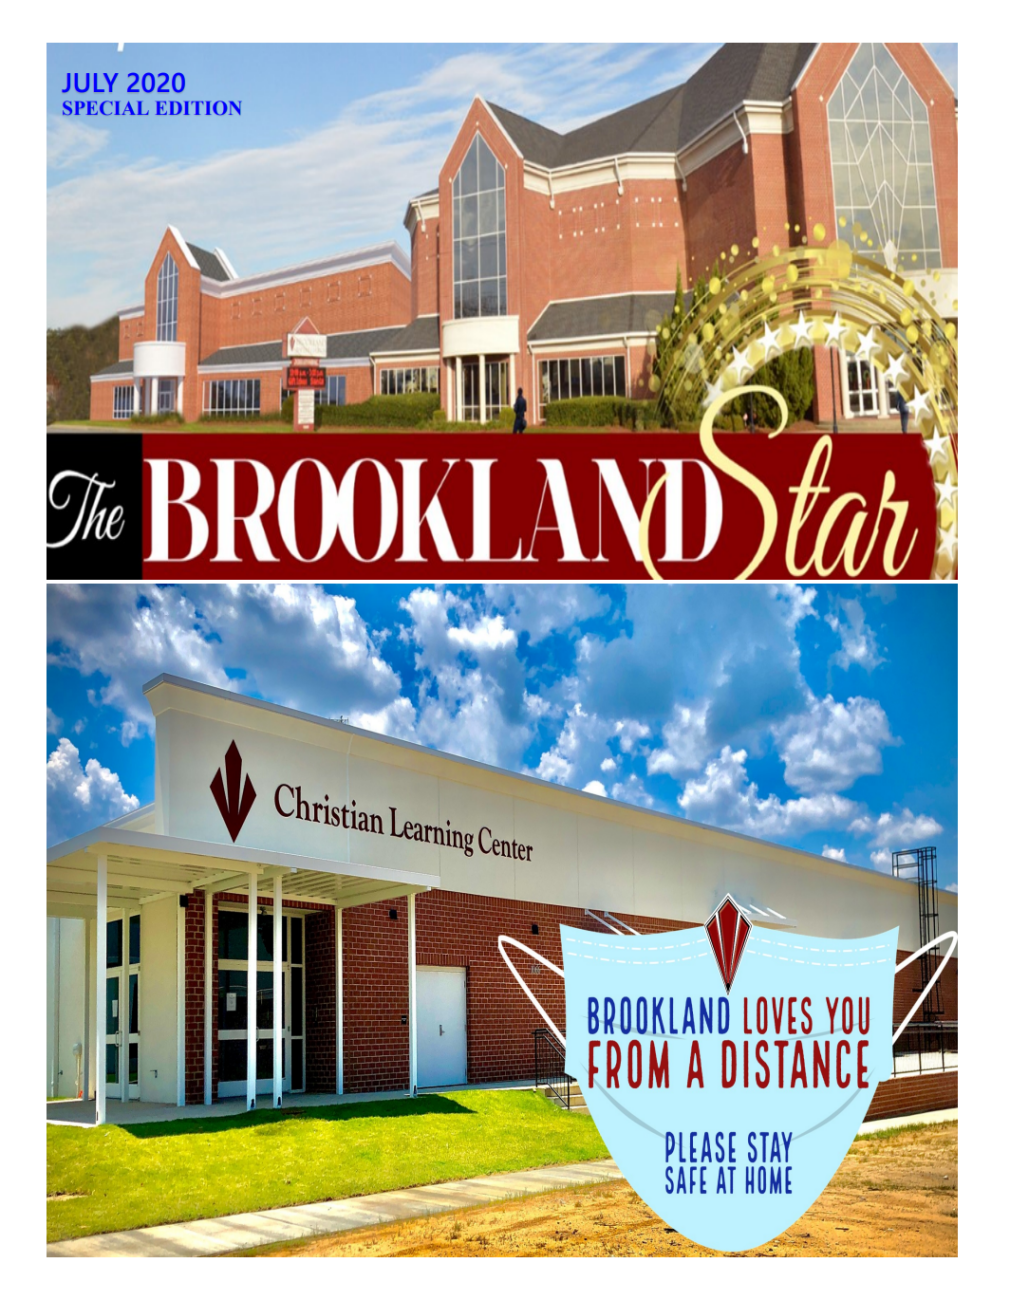 The Brookland Star July 2020 Edition